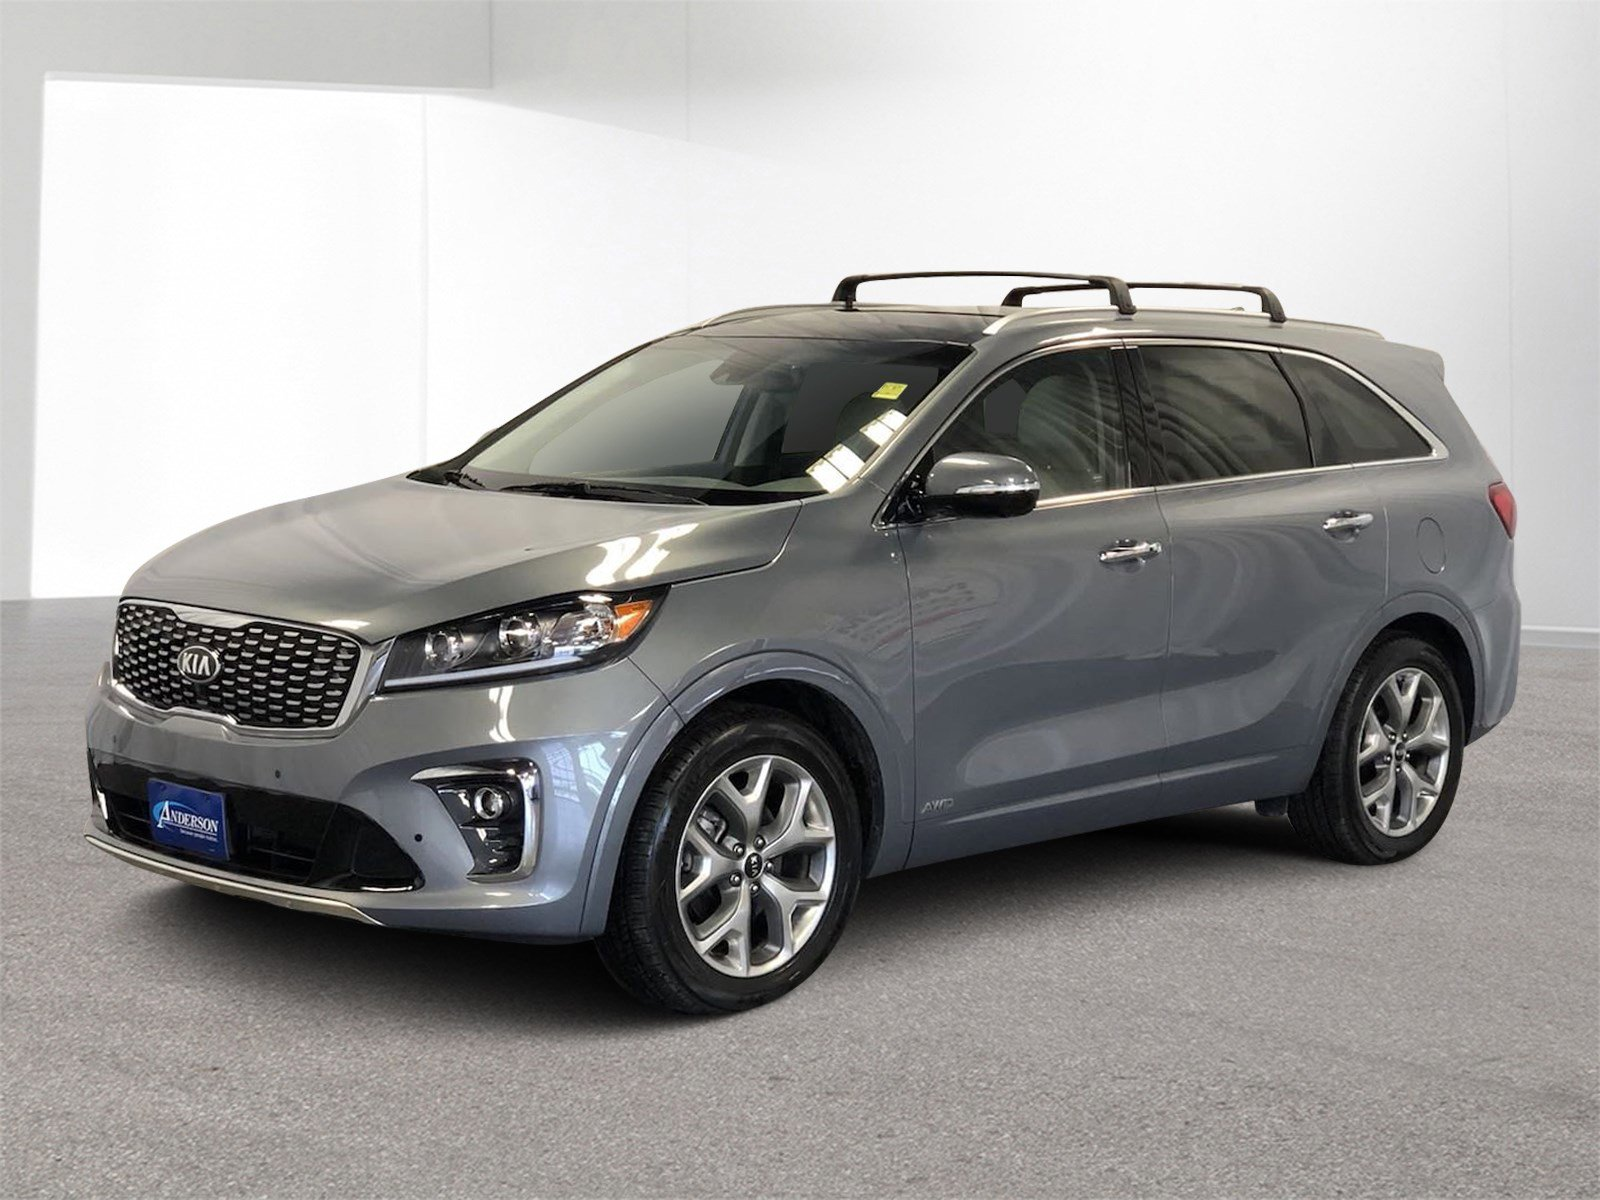 New 2020 Kia Sorento SX V6 Sport Utility for sale in St Joseph MO